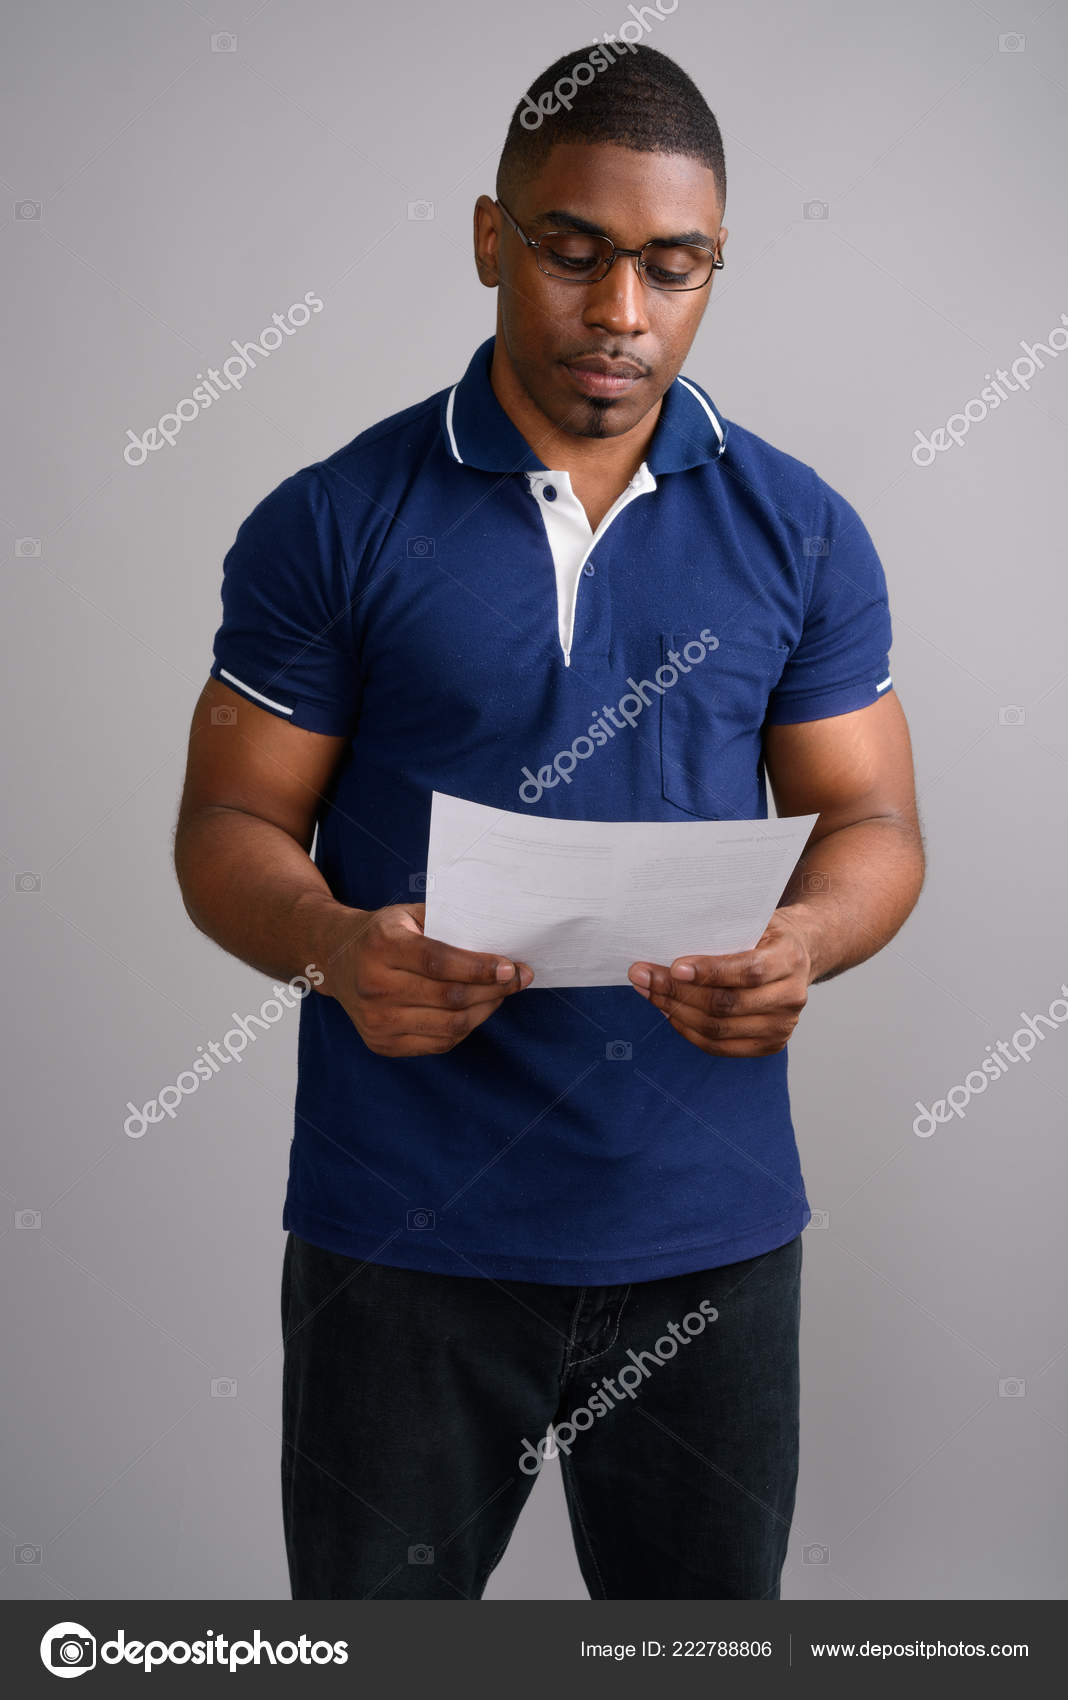 443ddc1b4 Young handsome African man wearing blue polo shirt against gray — Stock  Photo